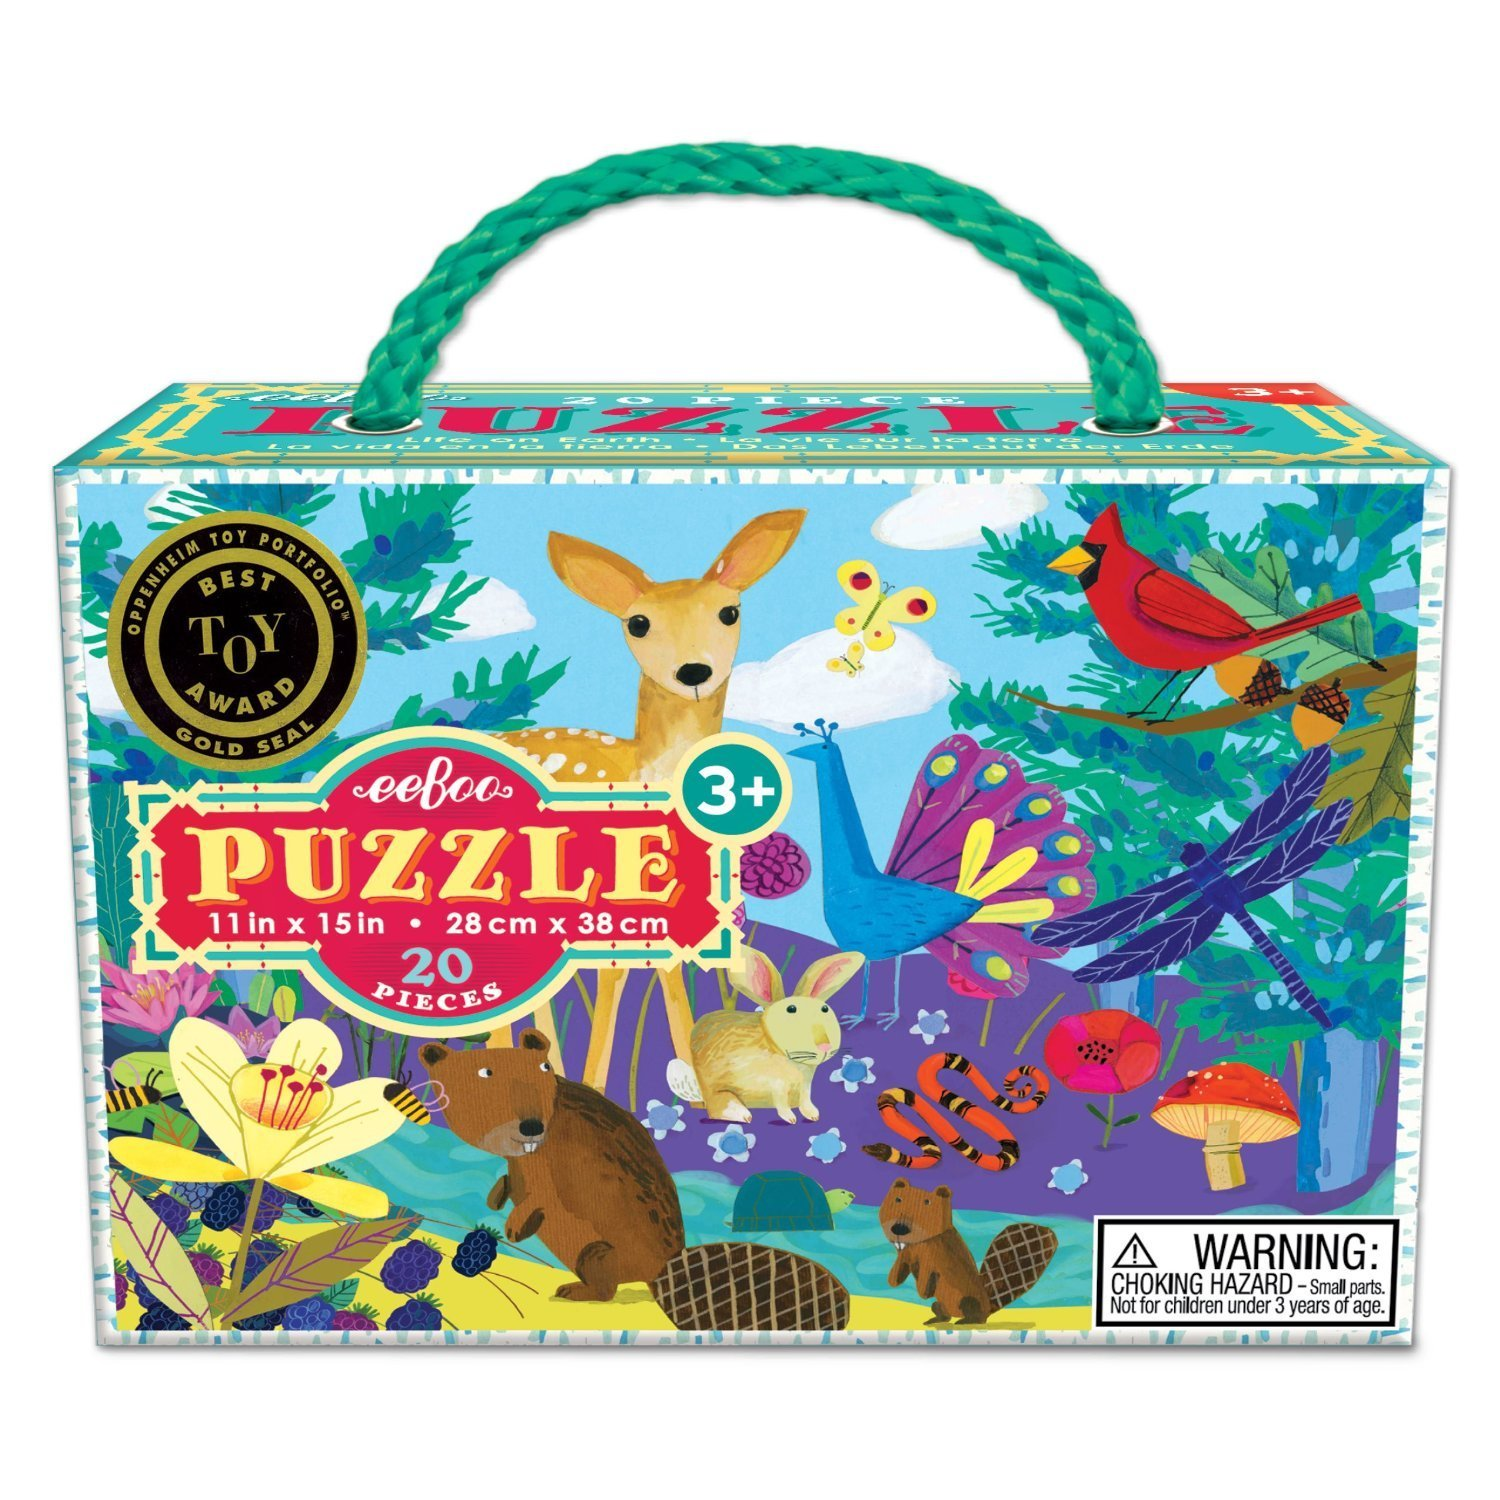 20 Jumbo Piece Puzzles, Illustrations by Melissa Sweet and Kevin Hawkes, Life on Earth eeBoo PZLOE2